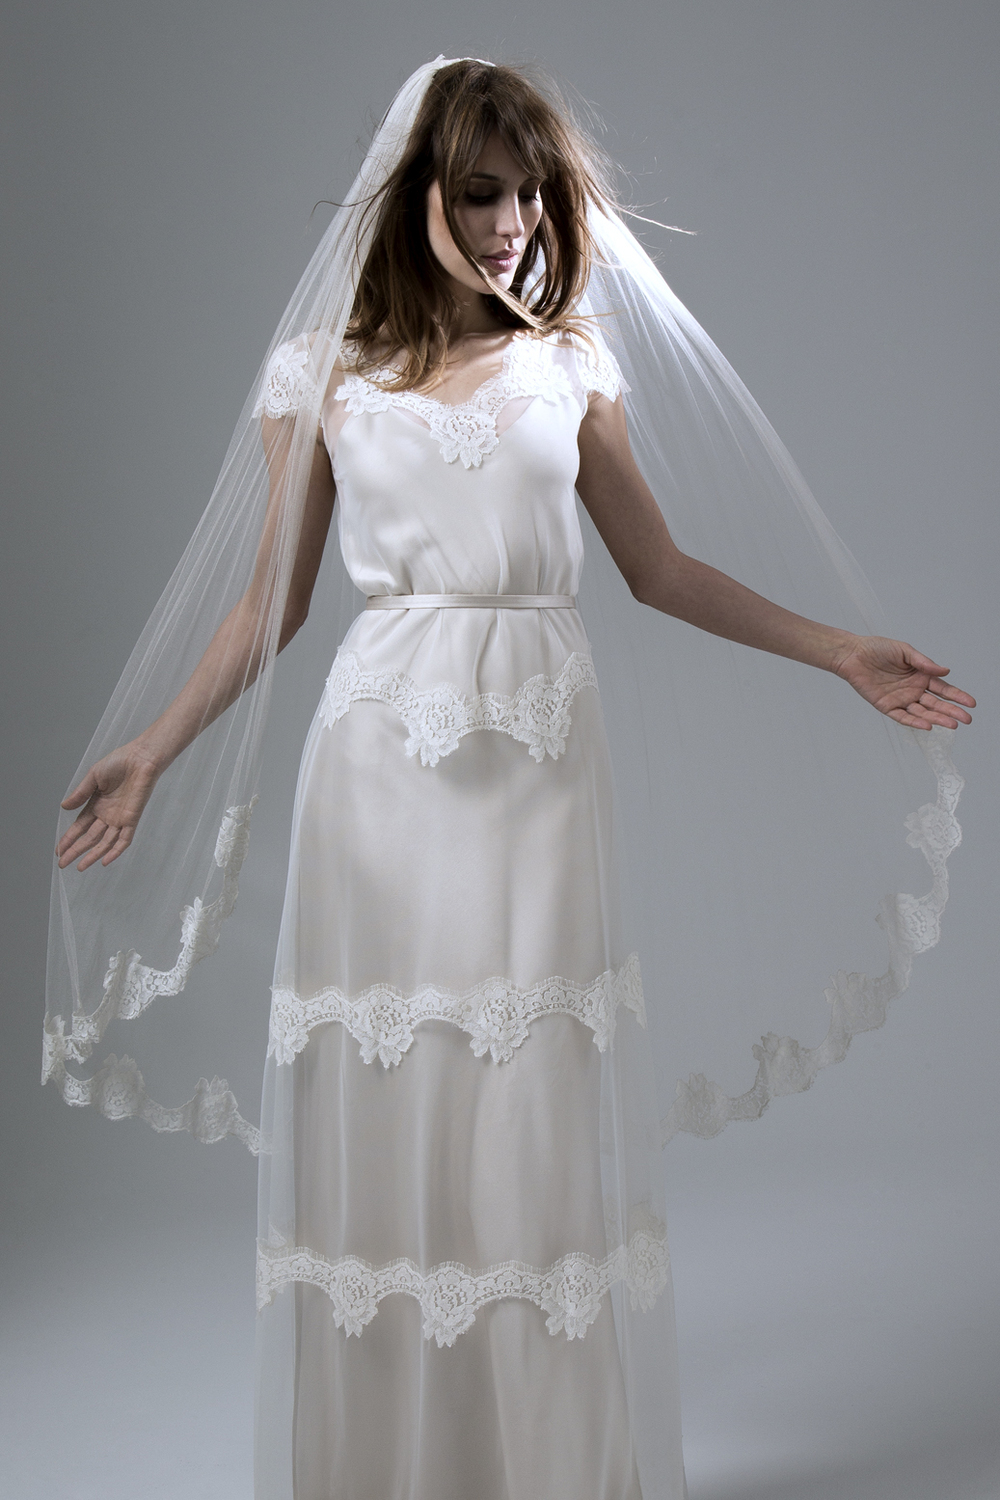 Emily Tulle and French Lace Dress with Narrow Belt Wedding Dress by Halfpenny London